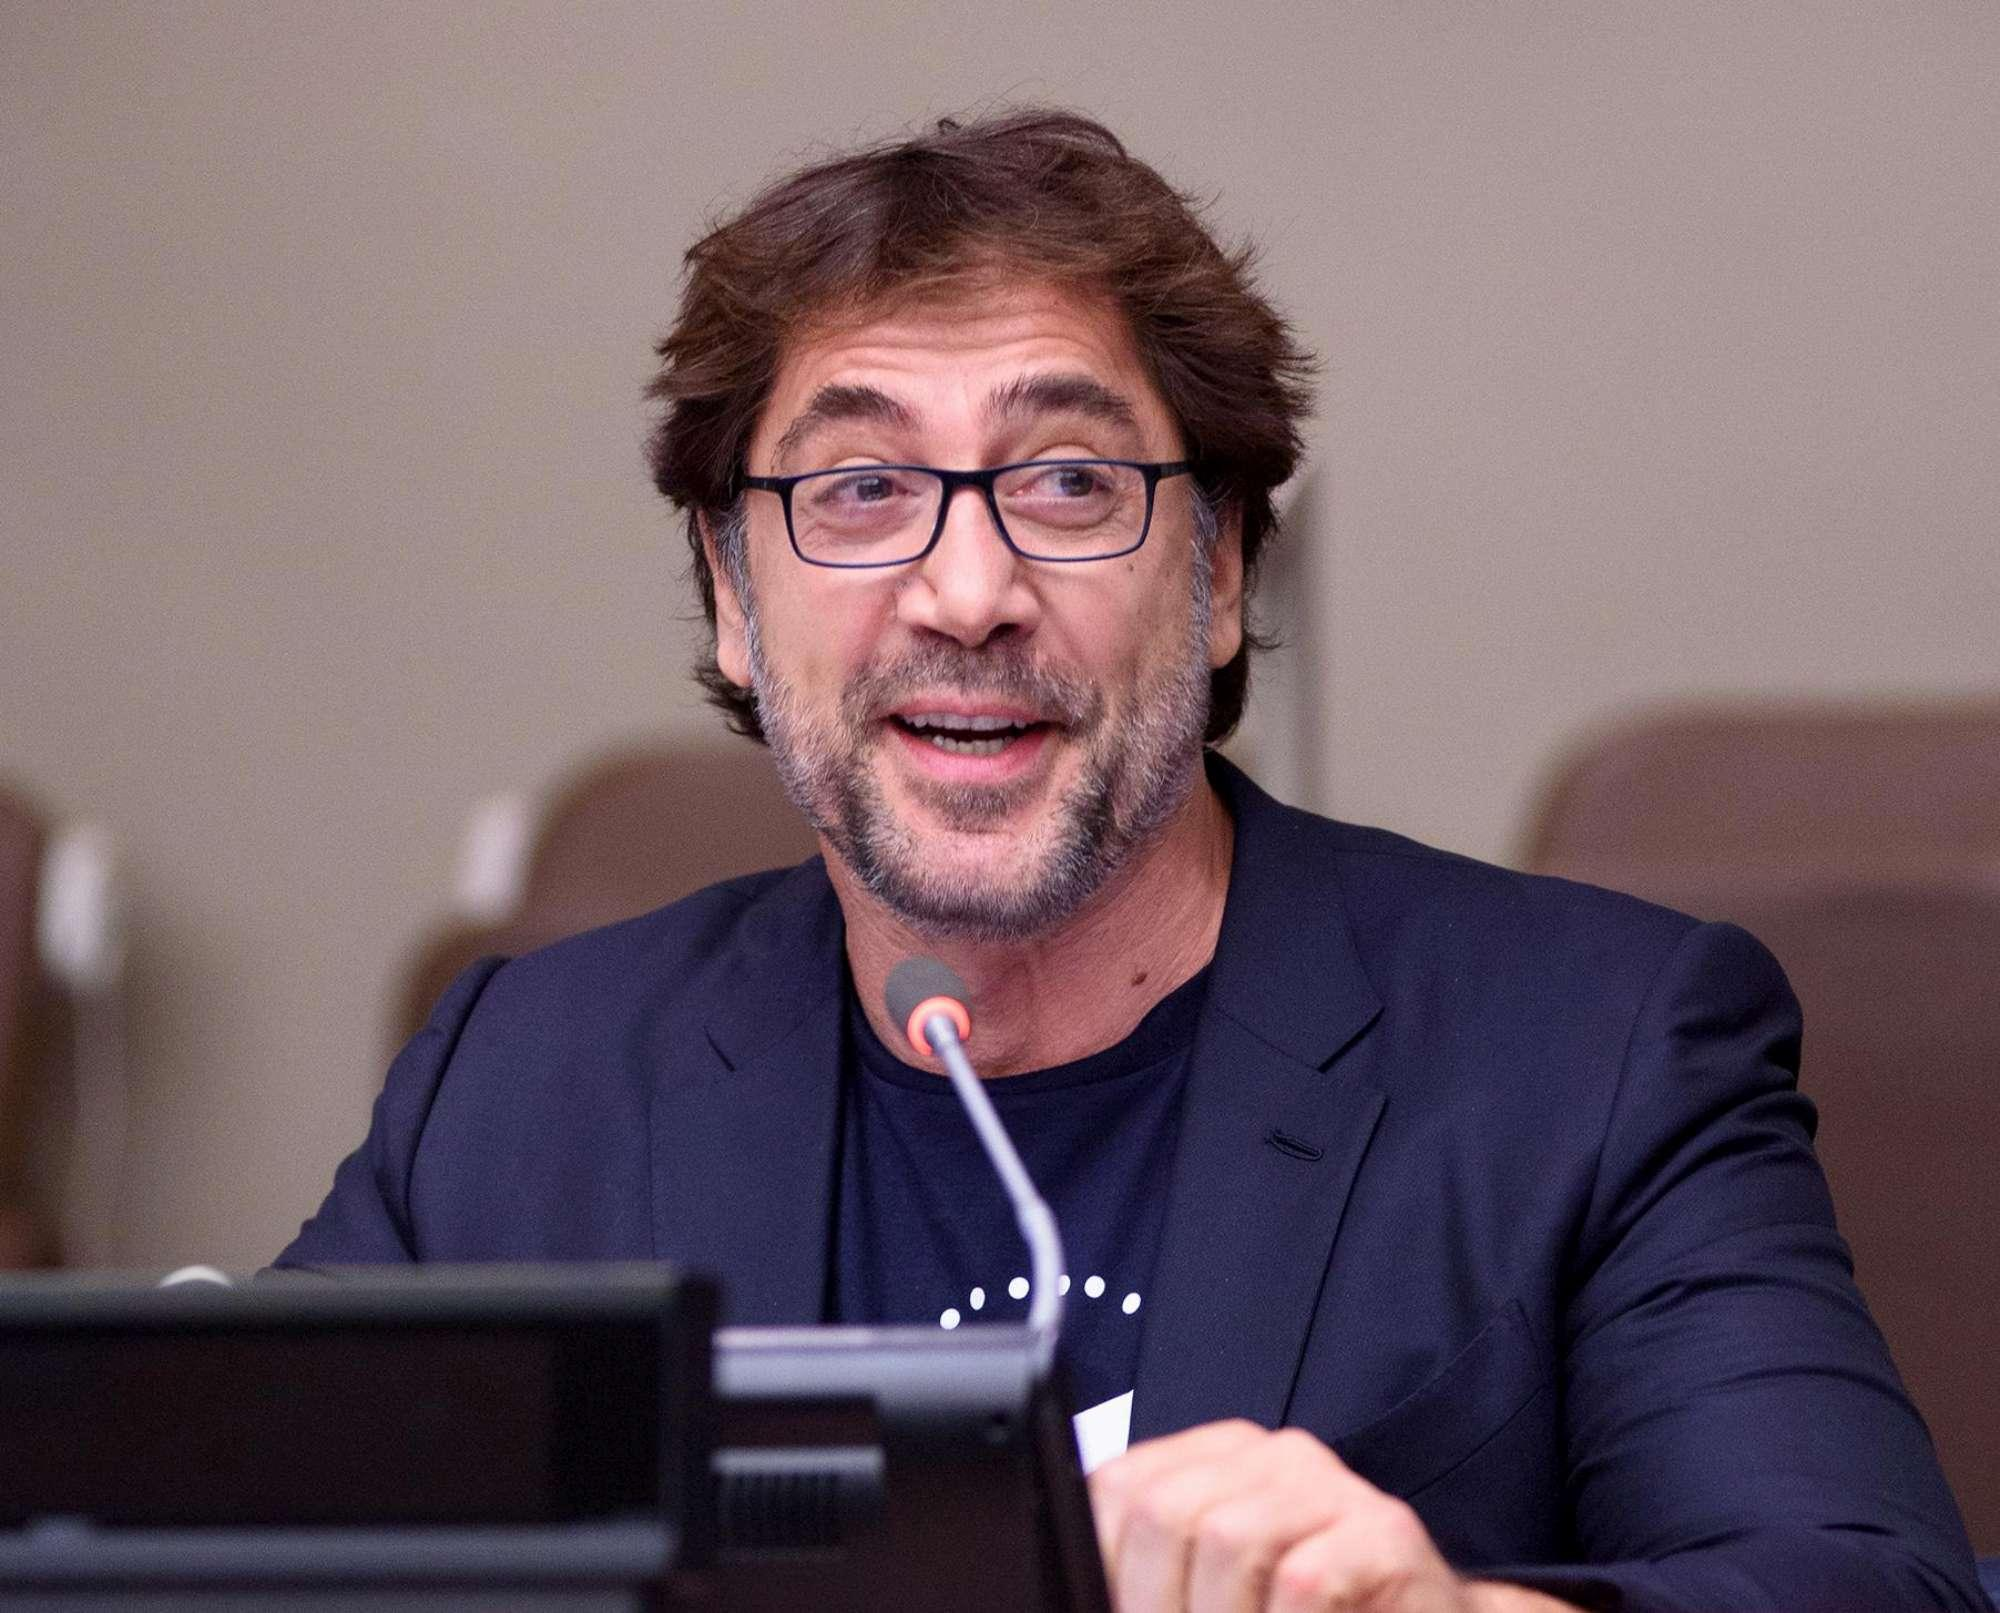 Javier Bardem all'Onu: